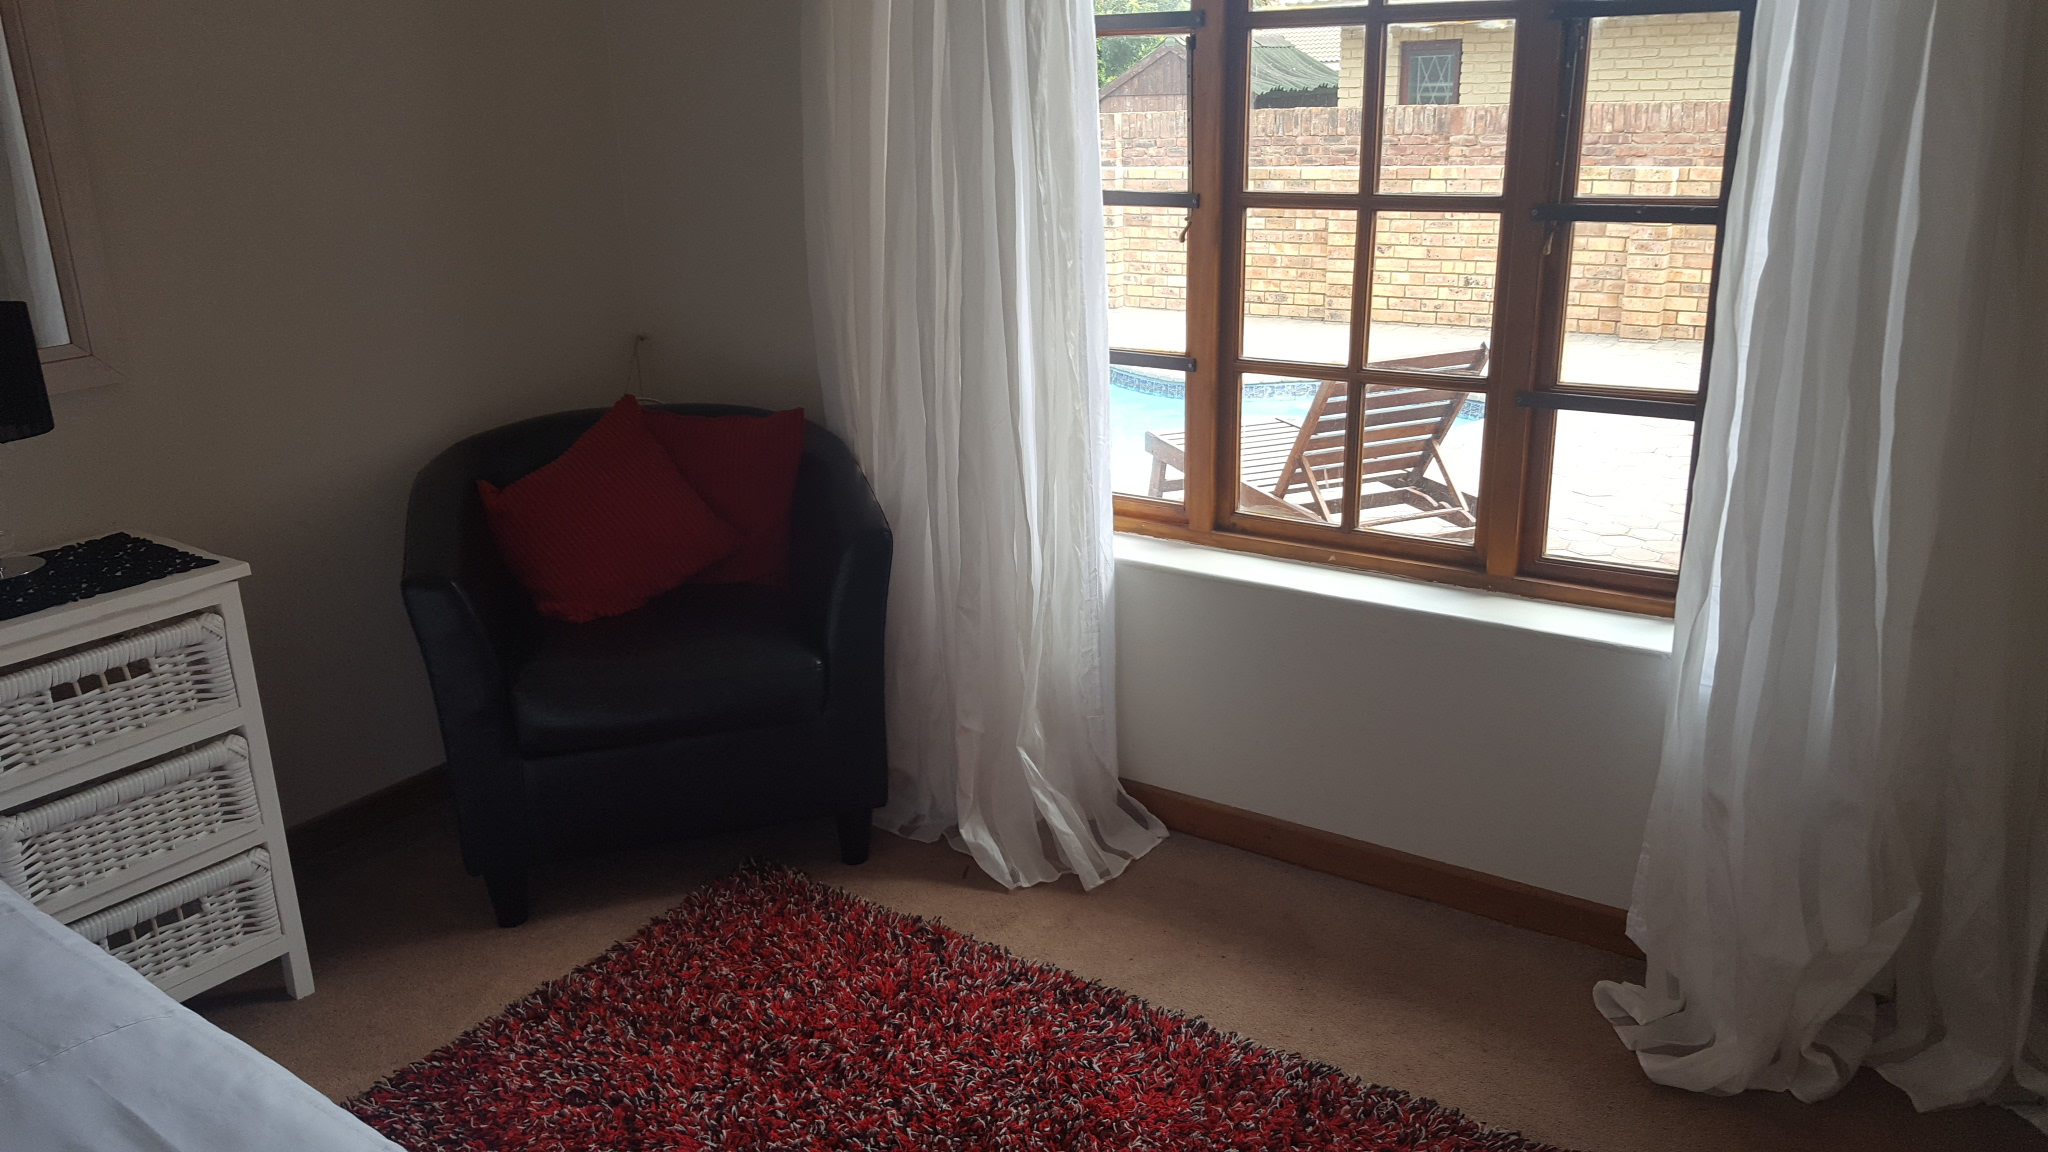 5 Bedroom House for sale in Bluewater Bay ENT0067493 : photo#16